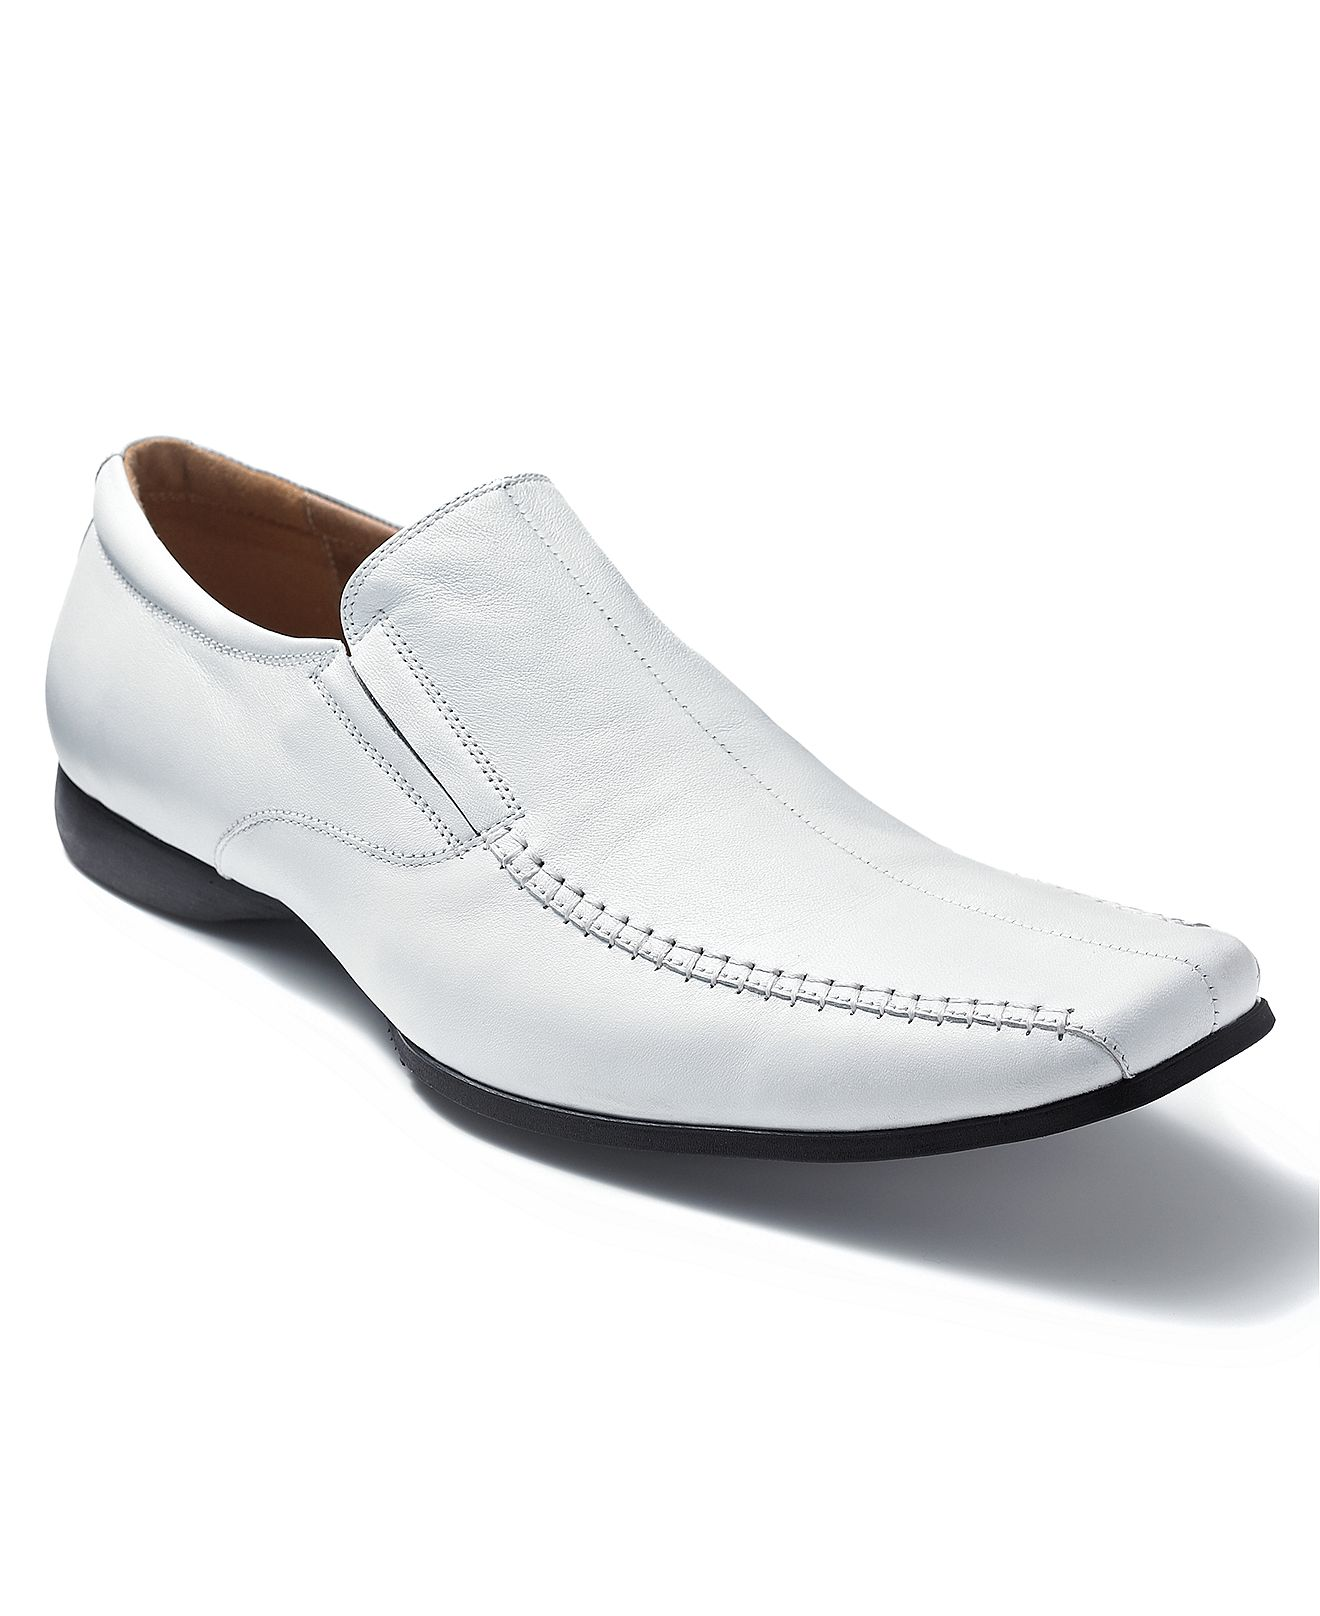 Steve Madden Carano Slip-On Dress Shoes - All Men's Shoes - Men - Macy's